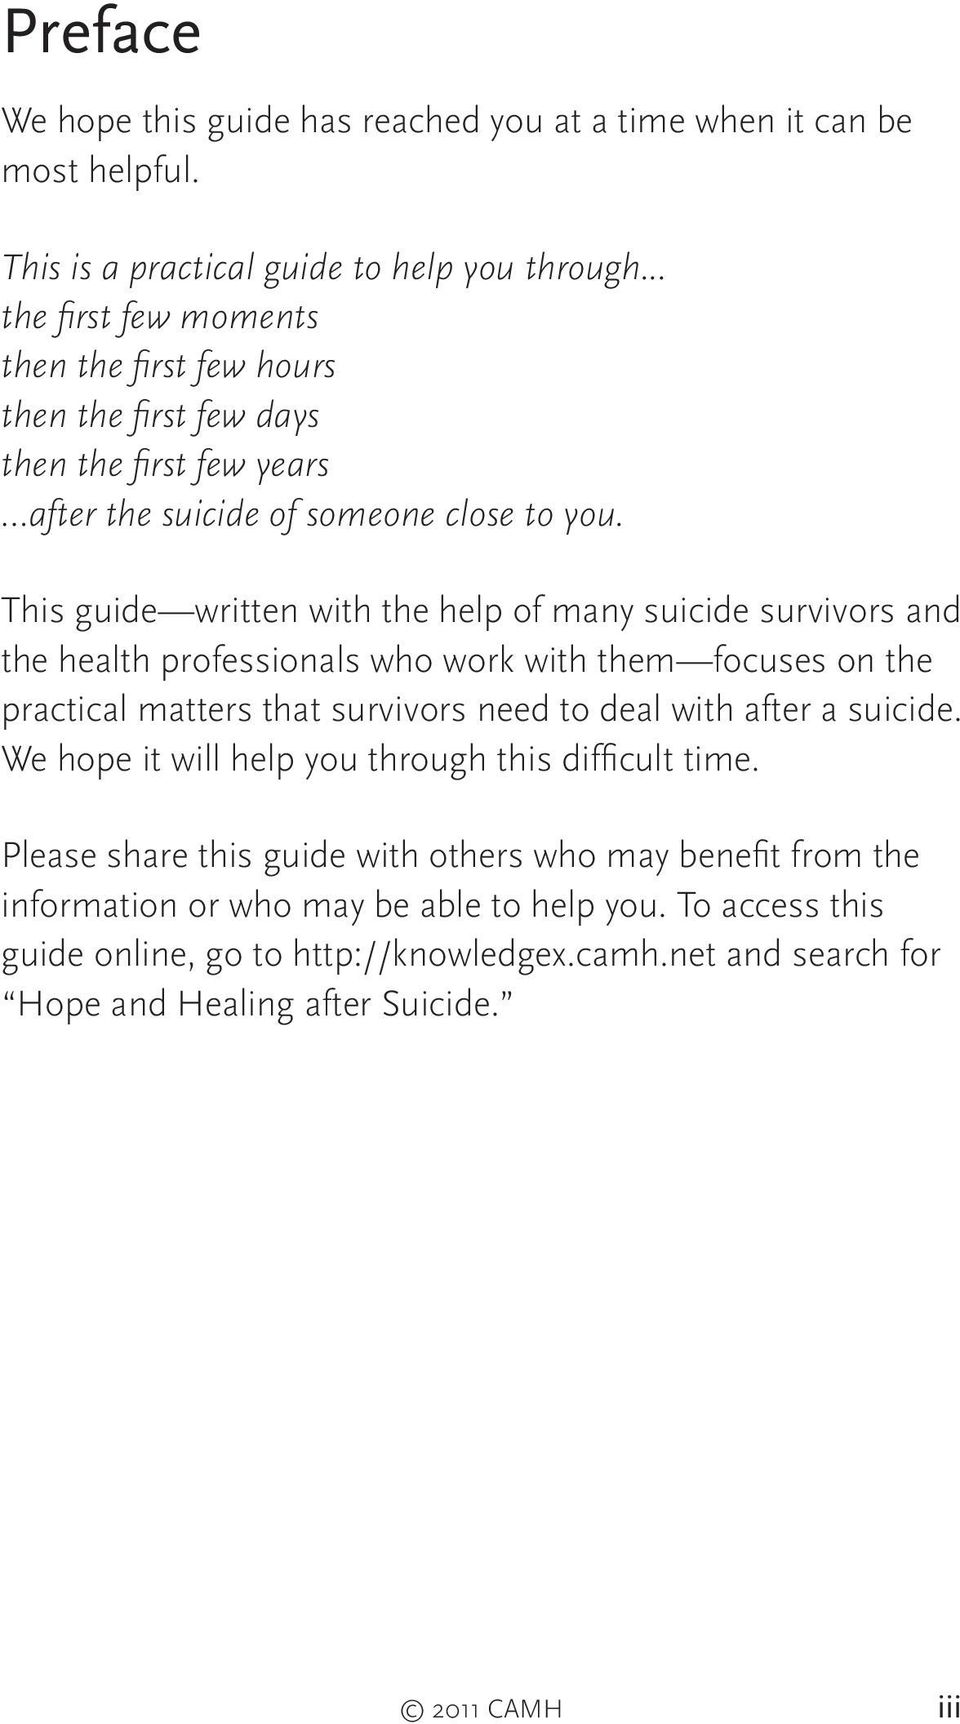 This guide written with the help of many suicide survivors and the health professionals who work with them focuses on the practical matters that survivors need to deal with after a